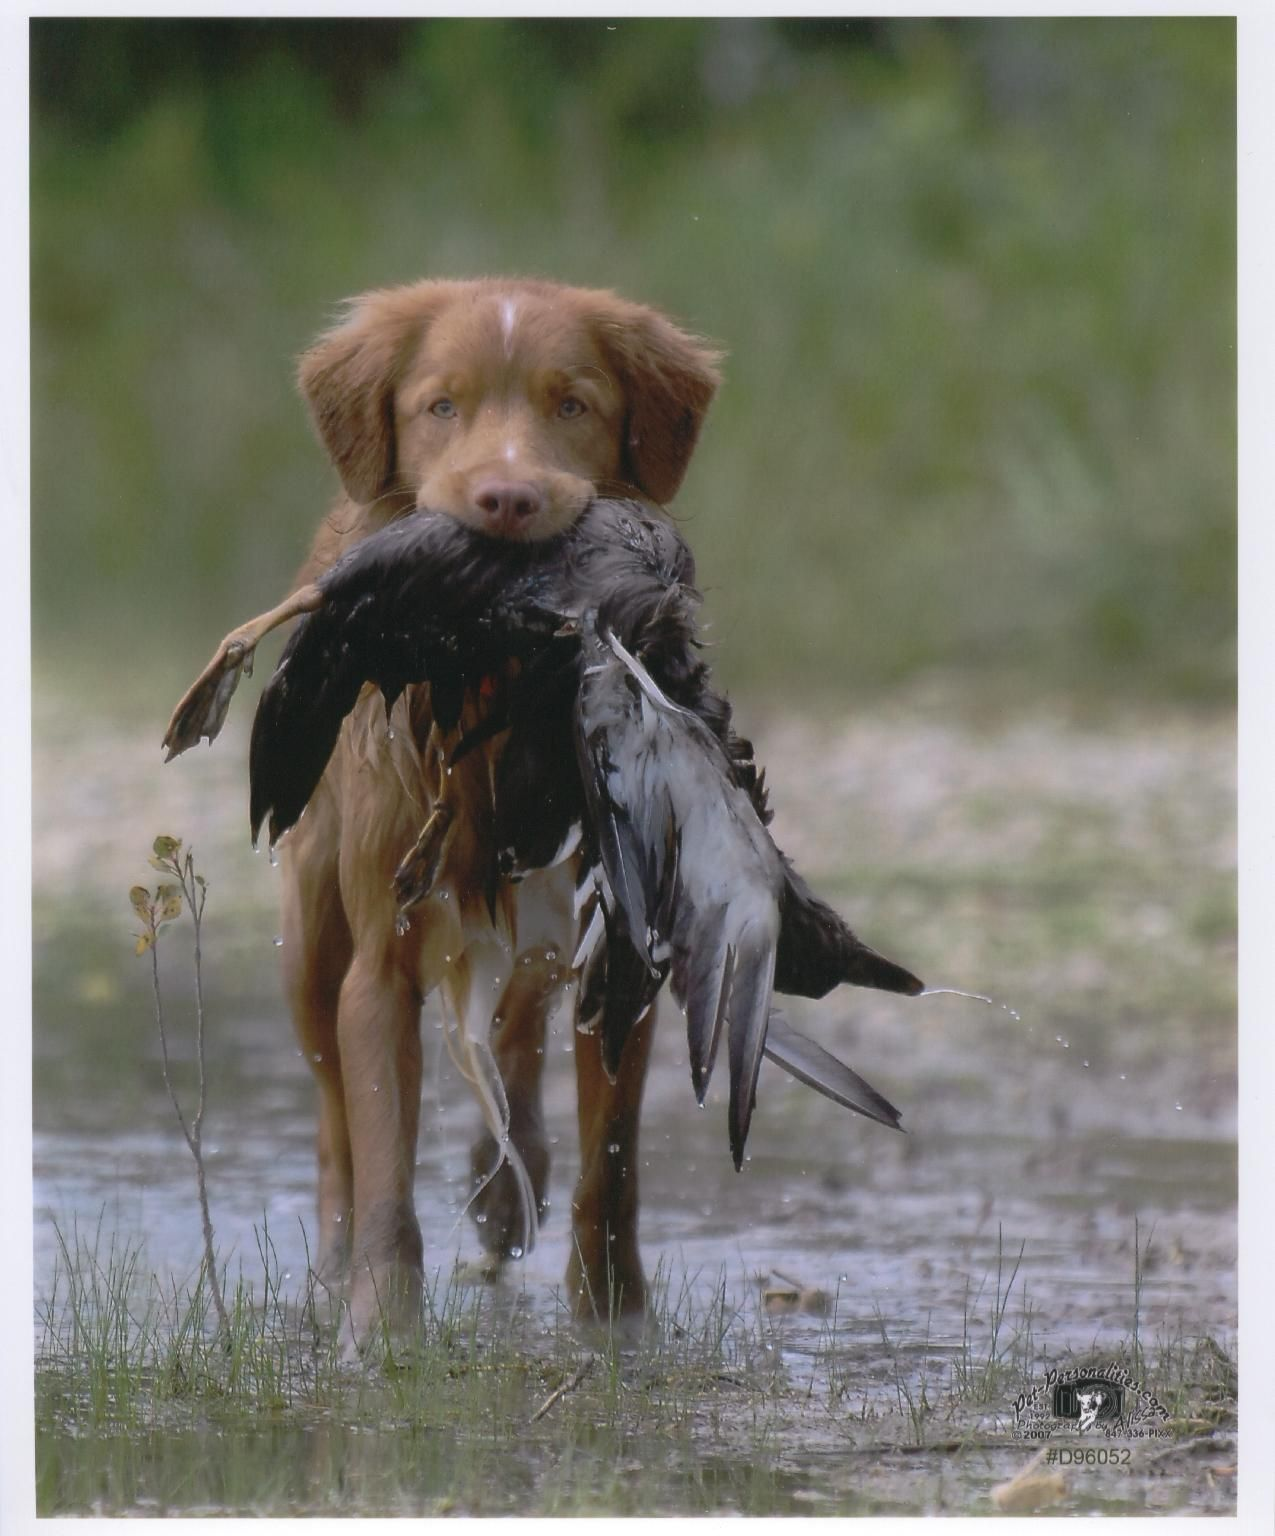 Wet+Dux2.jpg (1275×1536) Puppies, Puppy pictures, Dogs